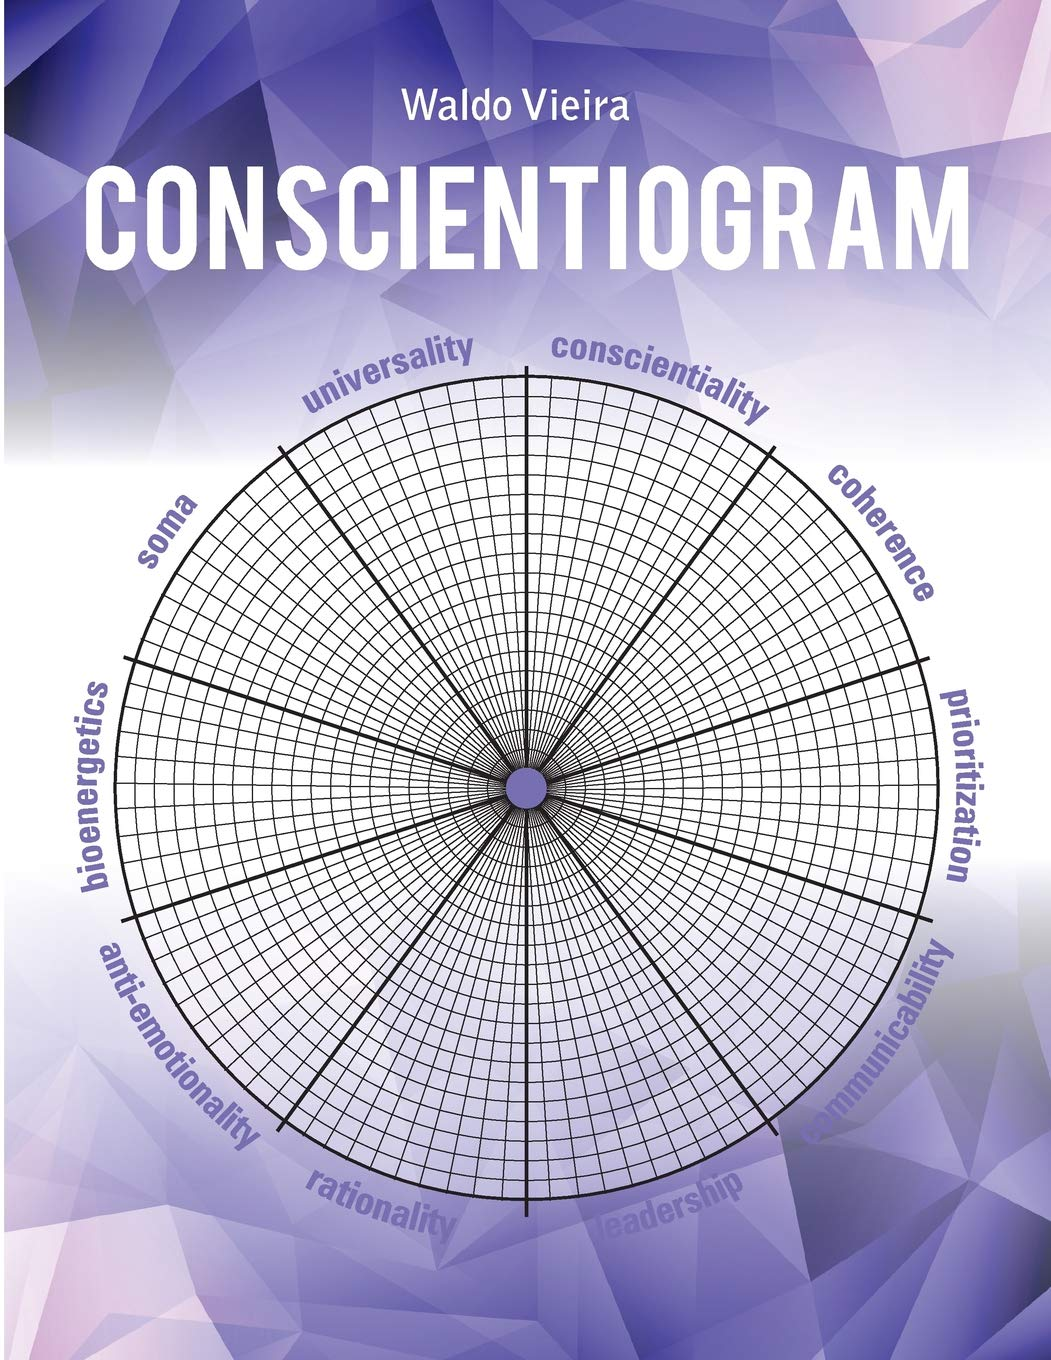 Conscientiogram: A technical evaluation of the integral consciousness